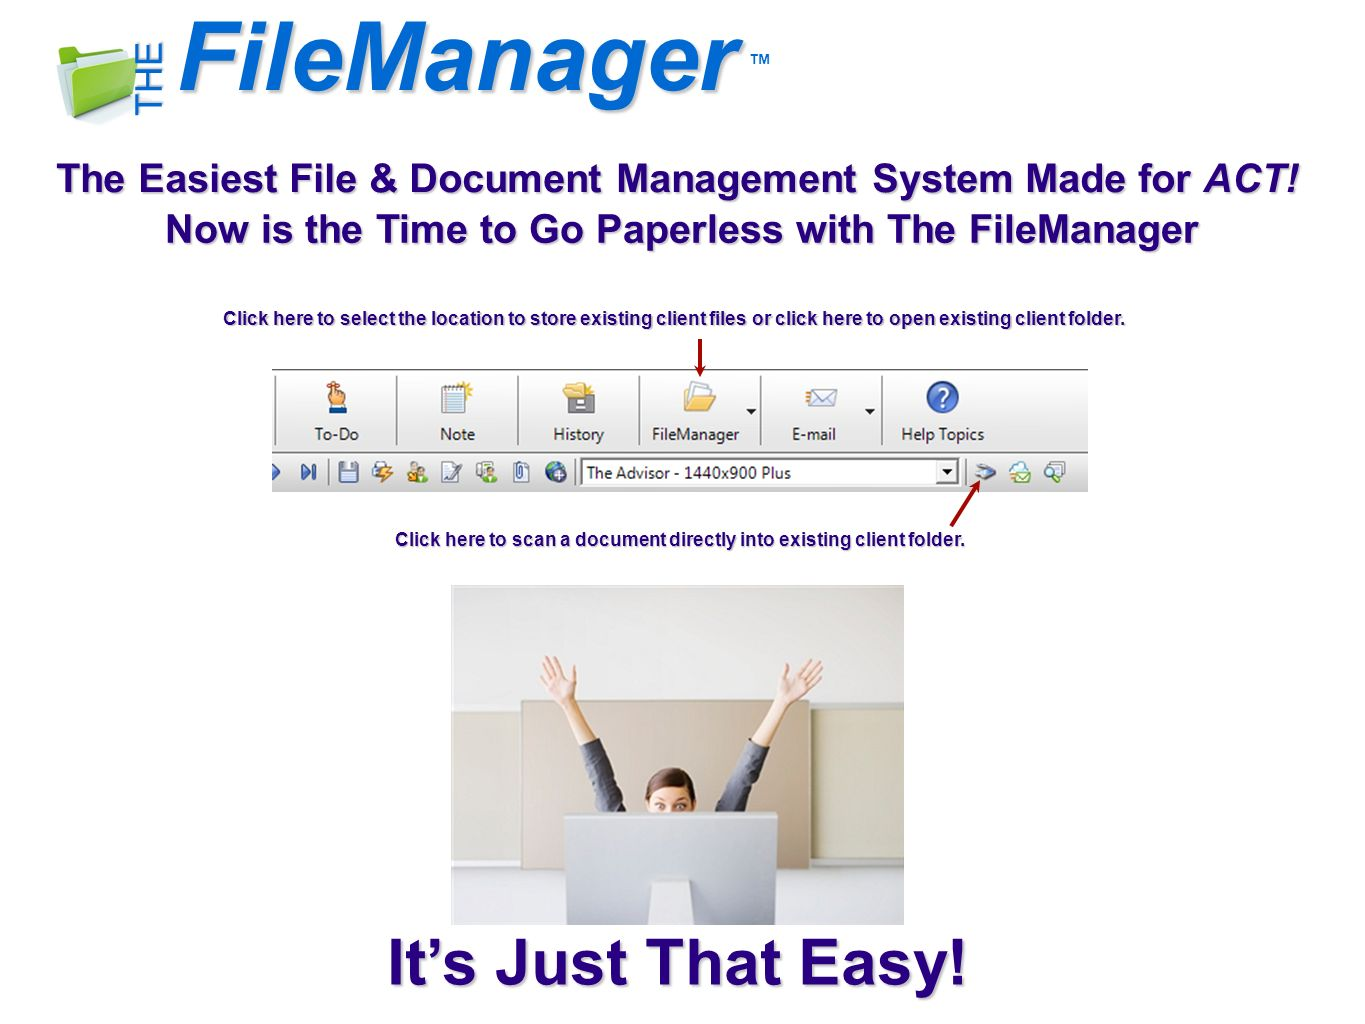 FileManager THE The Easiest File & Document Management System Made for ACT.